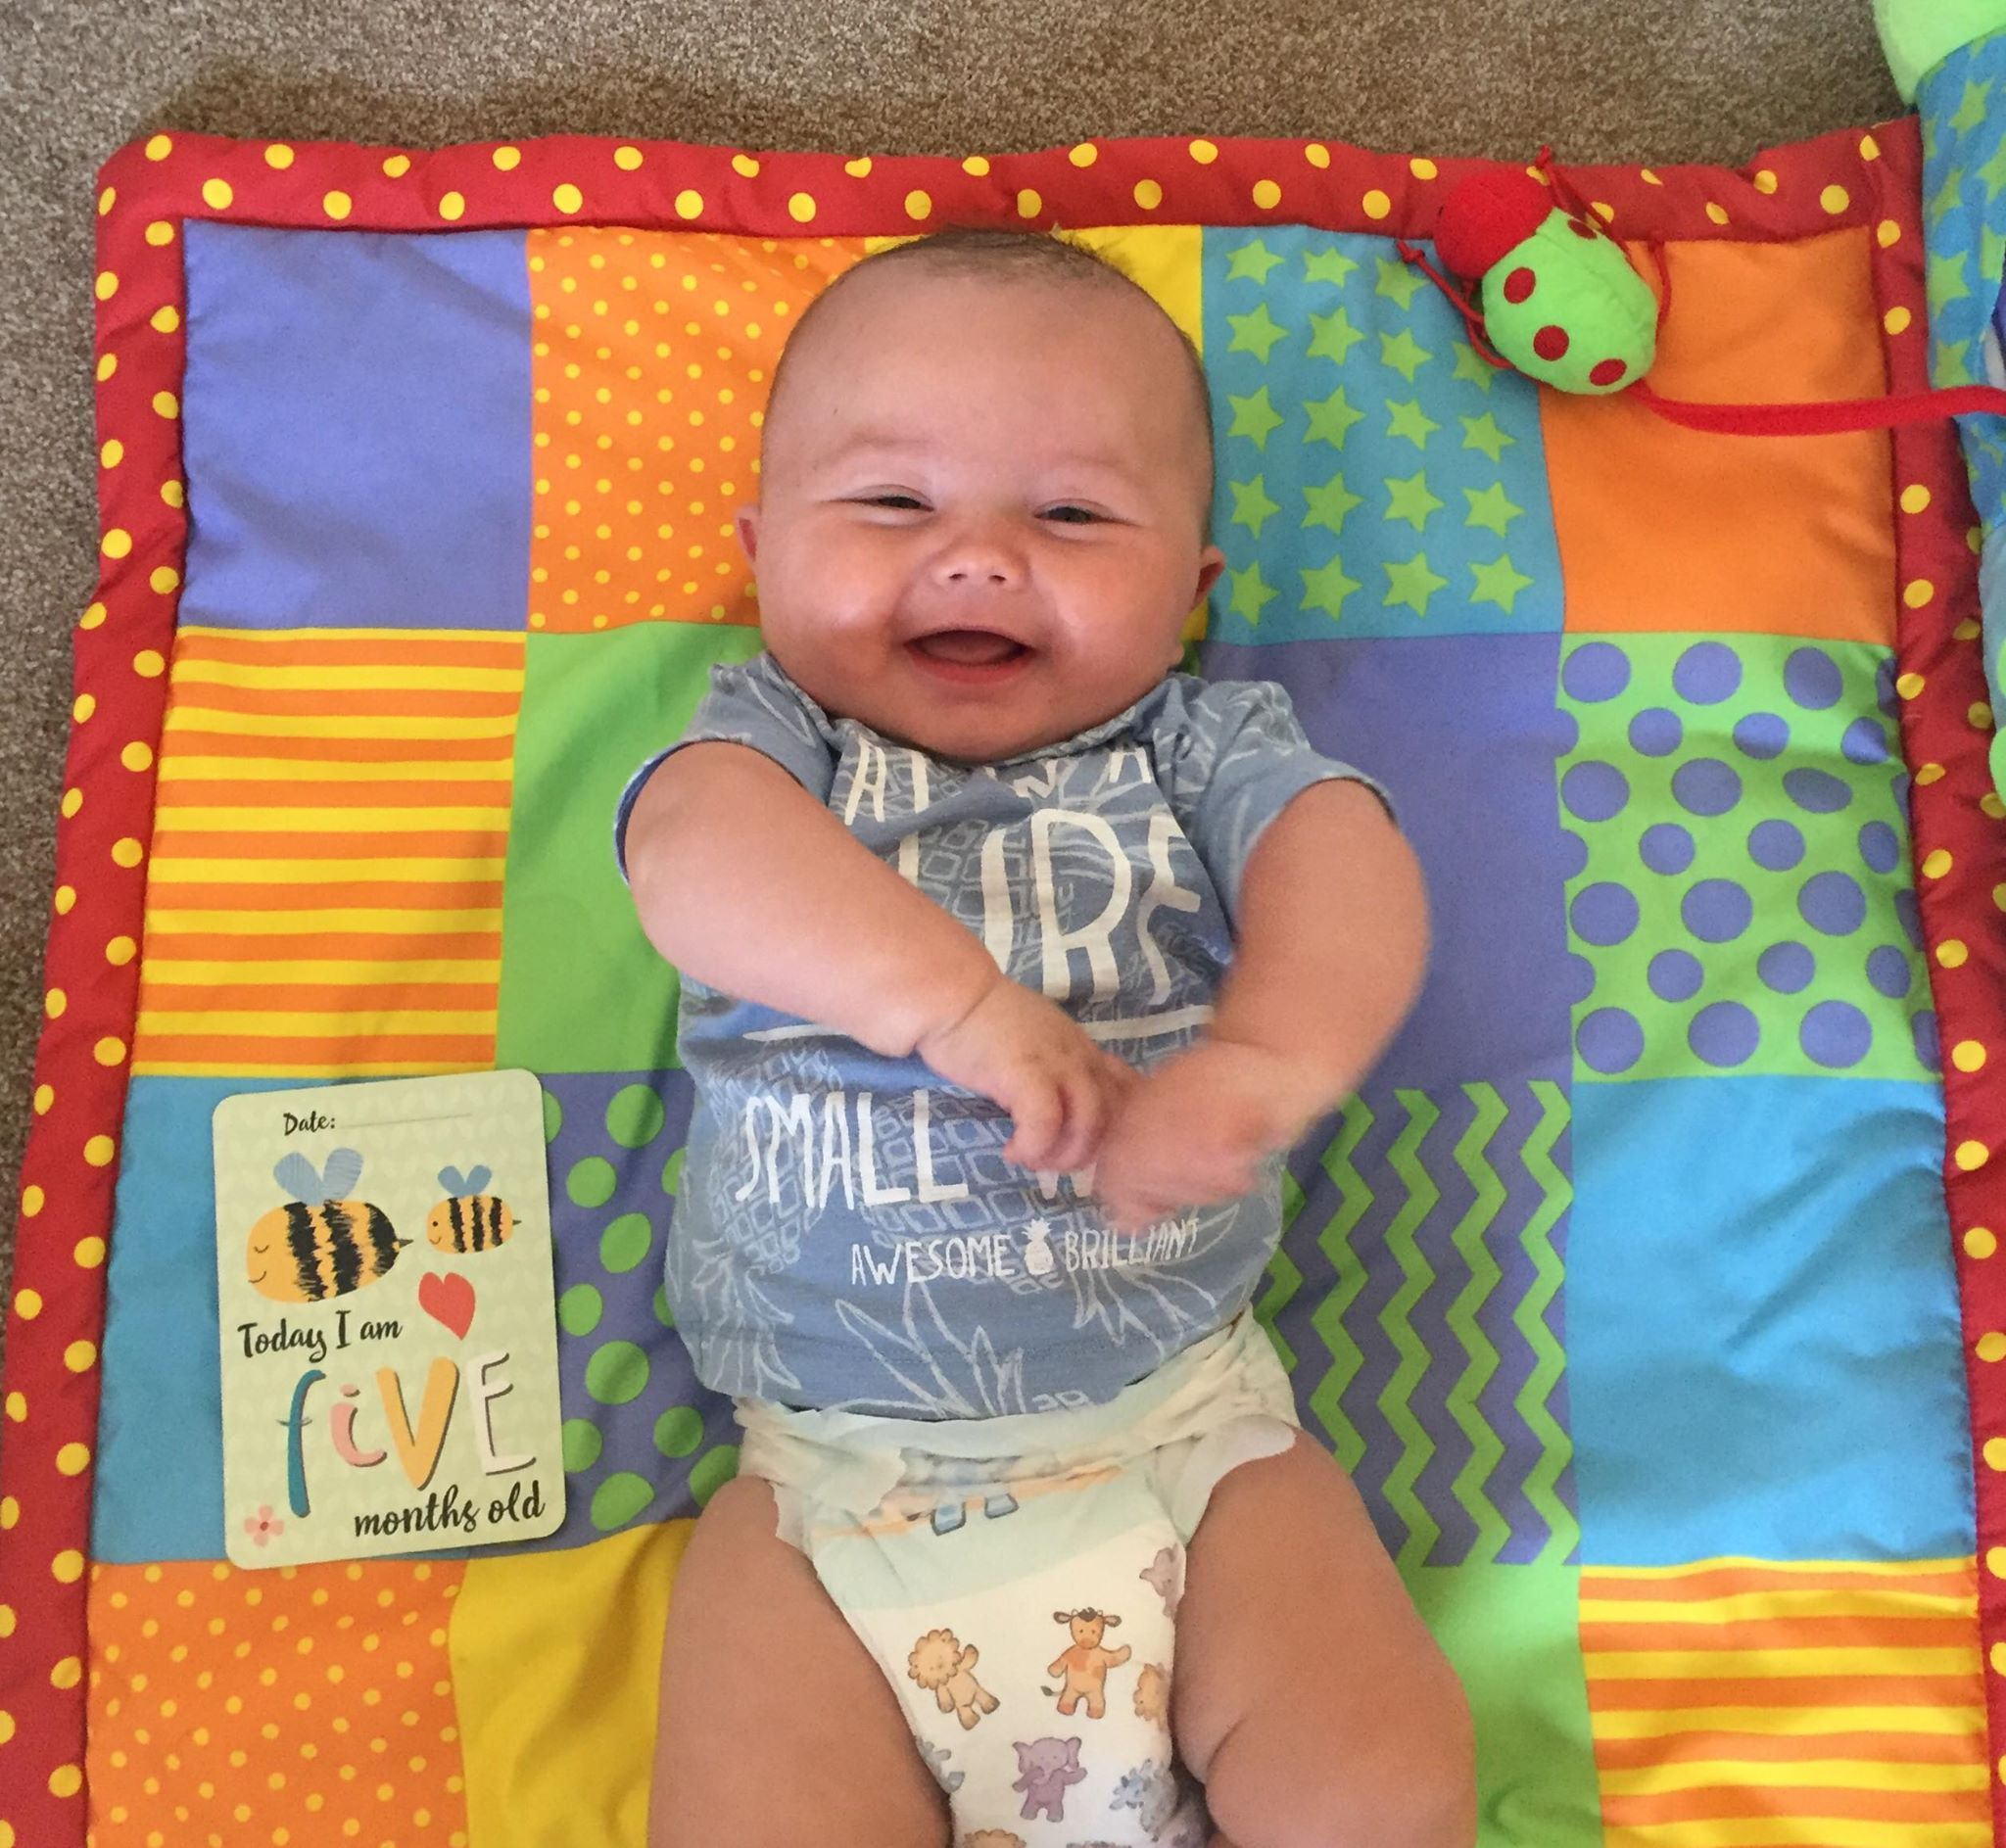 Smiley - baby Johnny who tragically died of Sudden Infant Death Syndrome